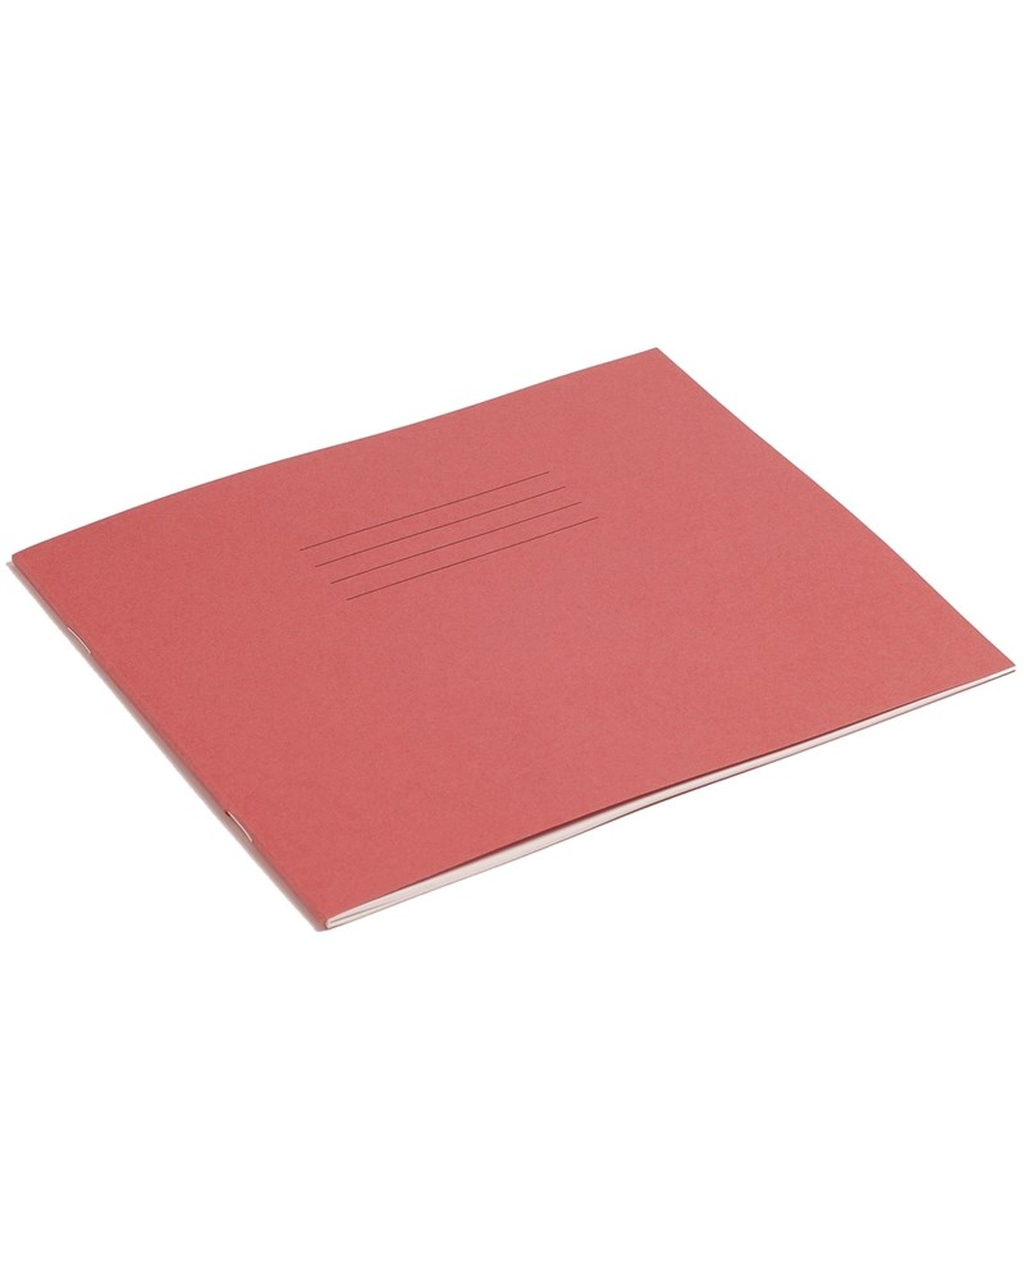 Exercise Book 8 x 6.5 (203 x 165mm) Red Cover 15mm Ruled 48 Pages